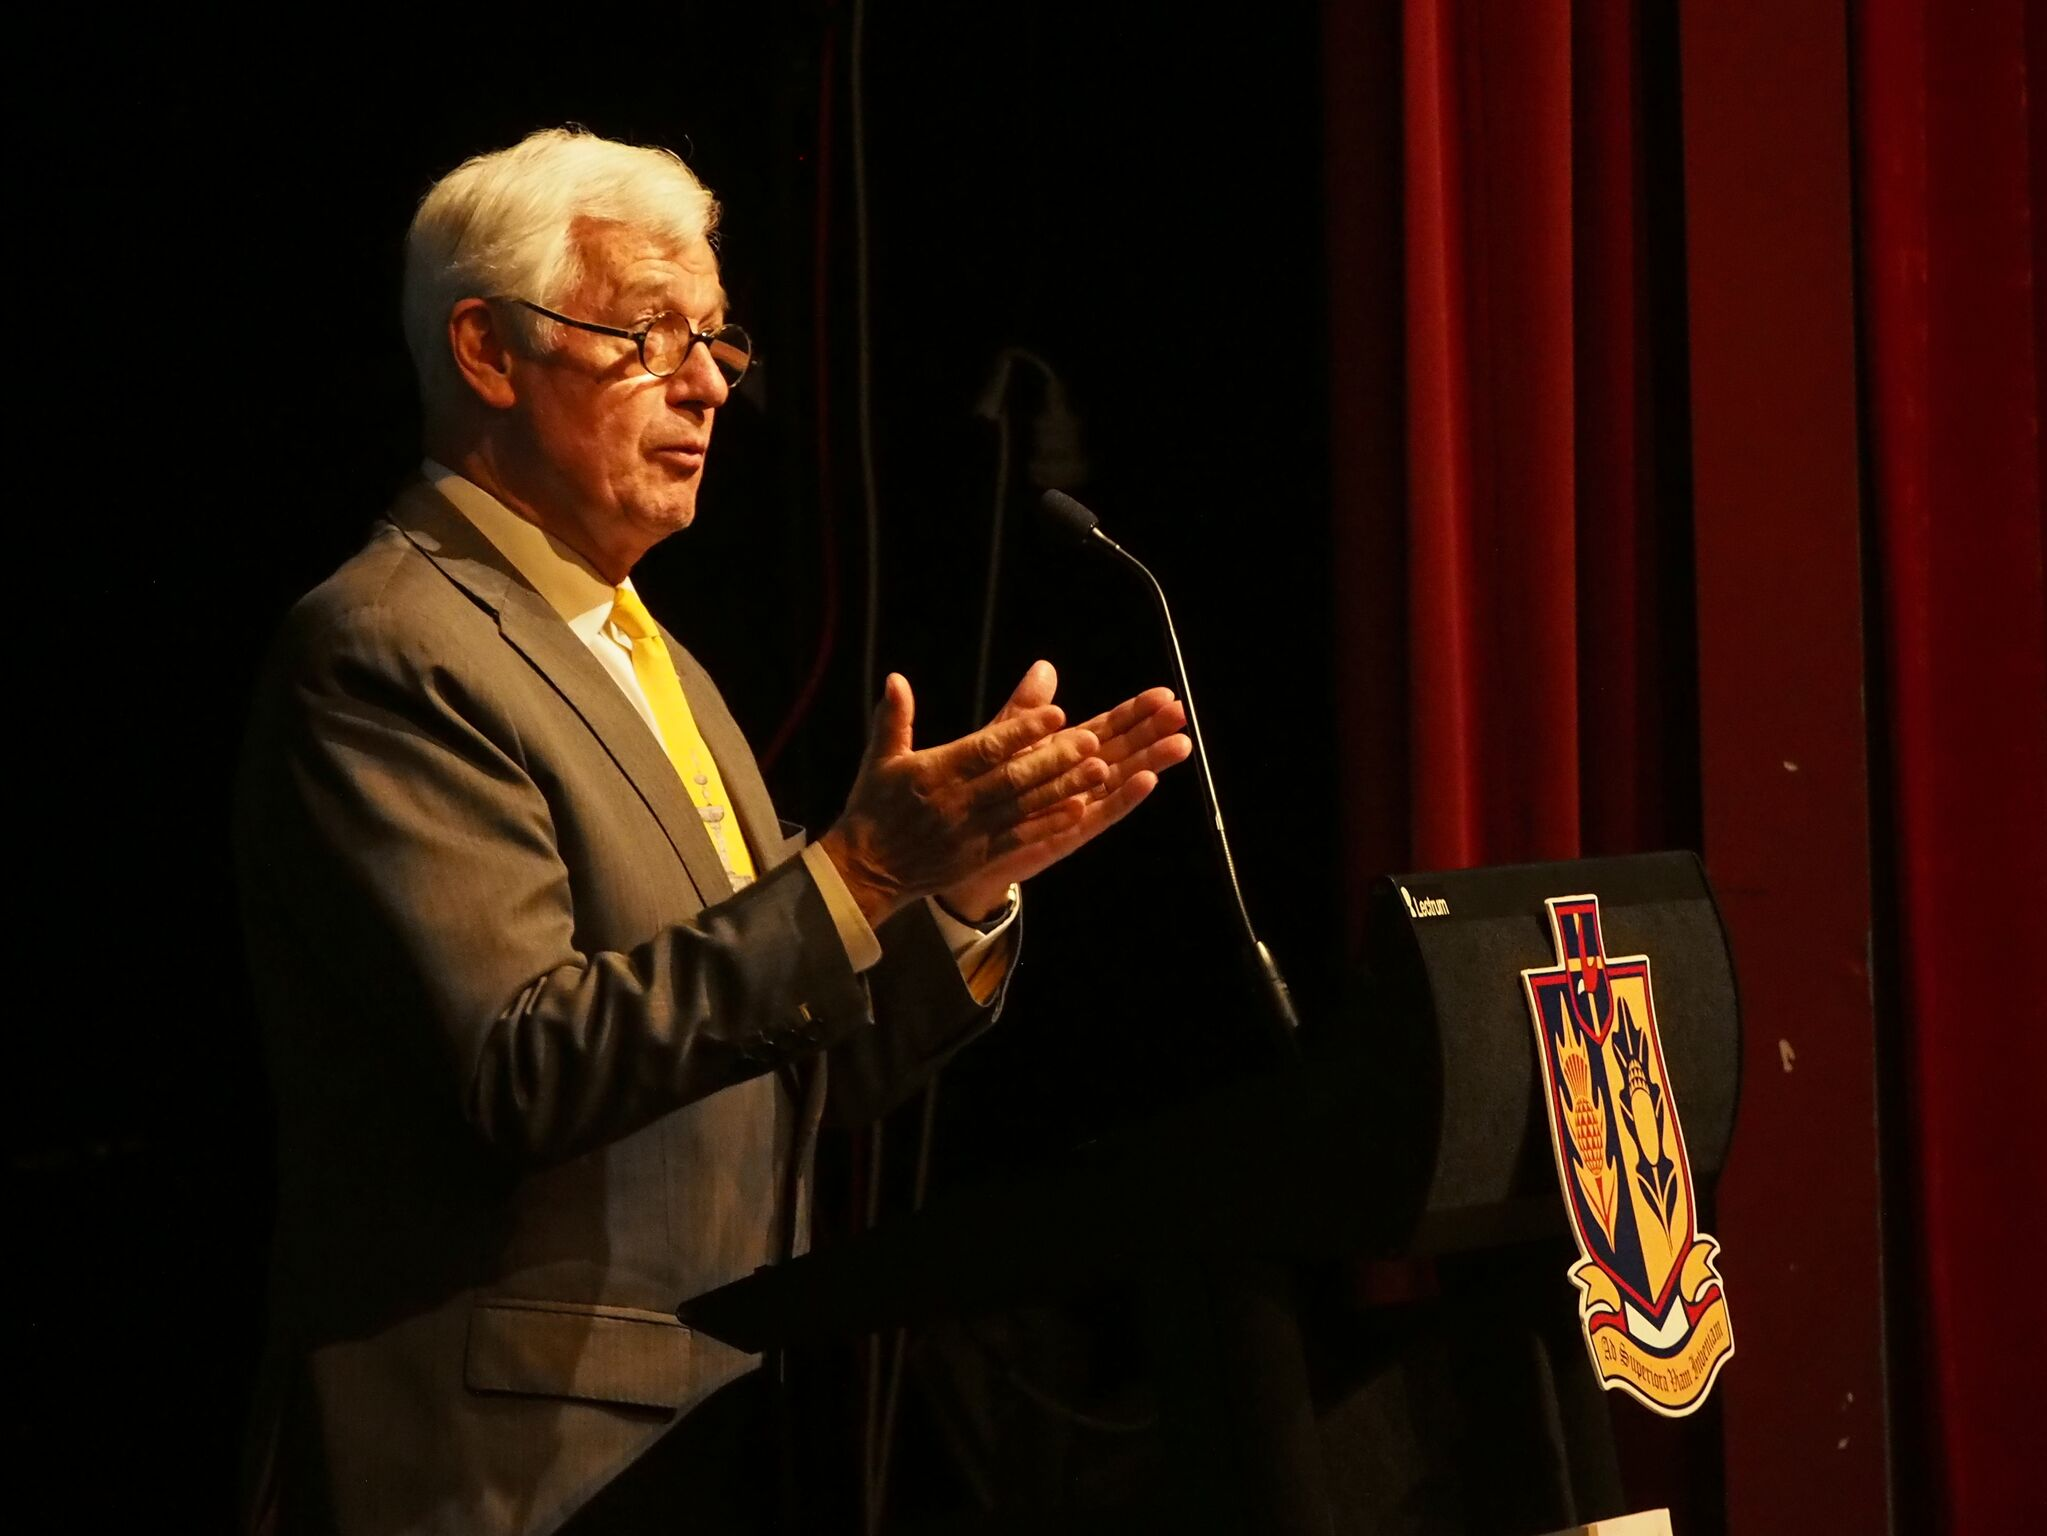 Julian Burnside AO QC at Launceston College